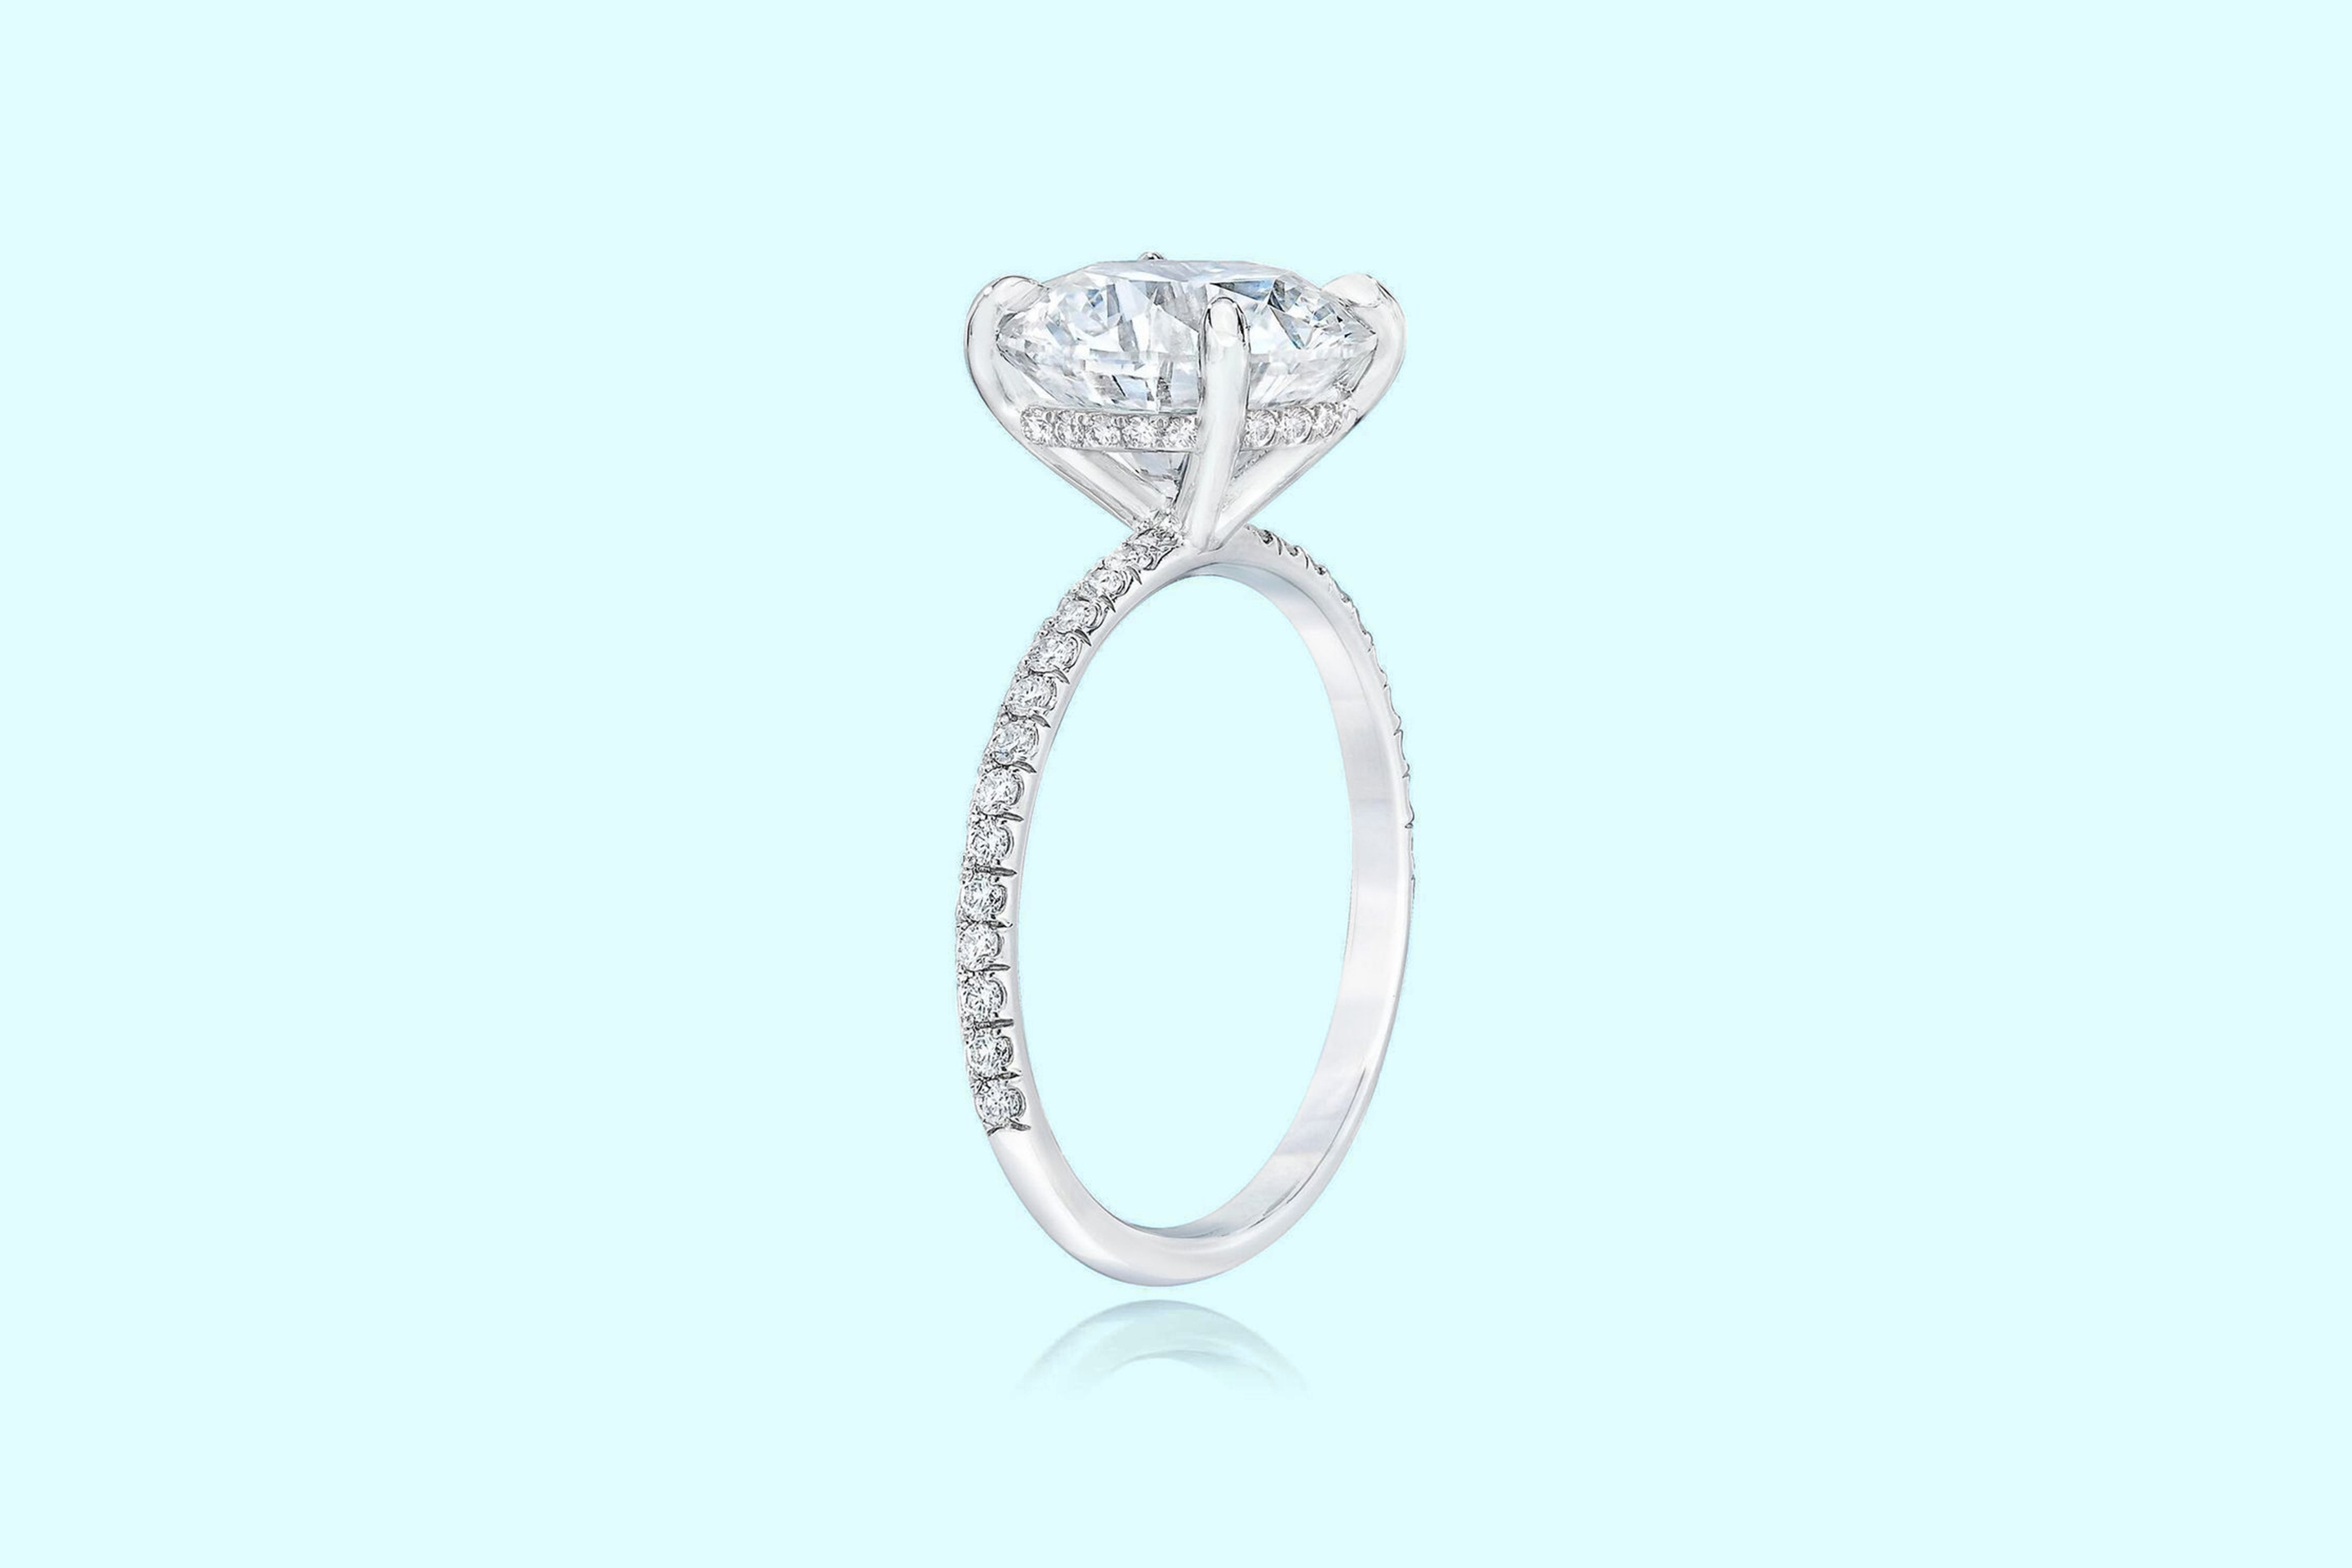 How To Buy An Engagement Ring Diamond Ring Shopping Guide Money